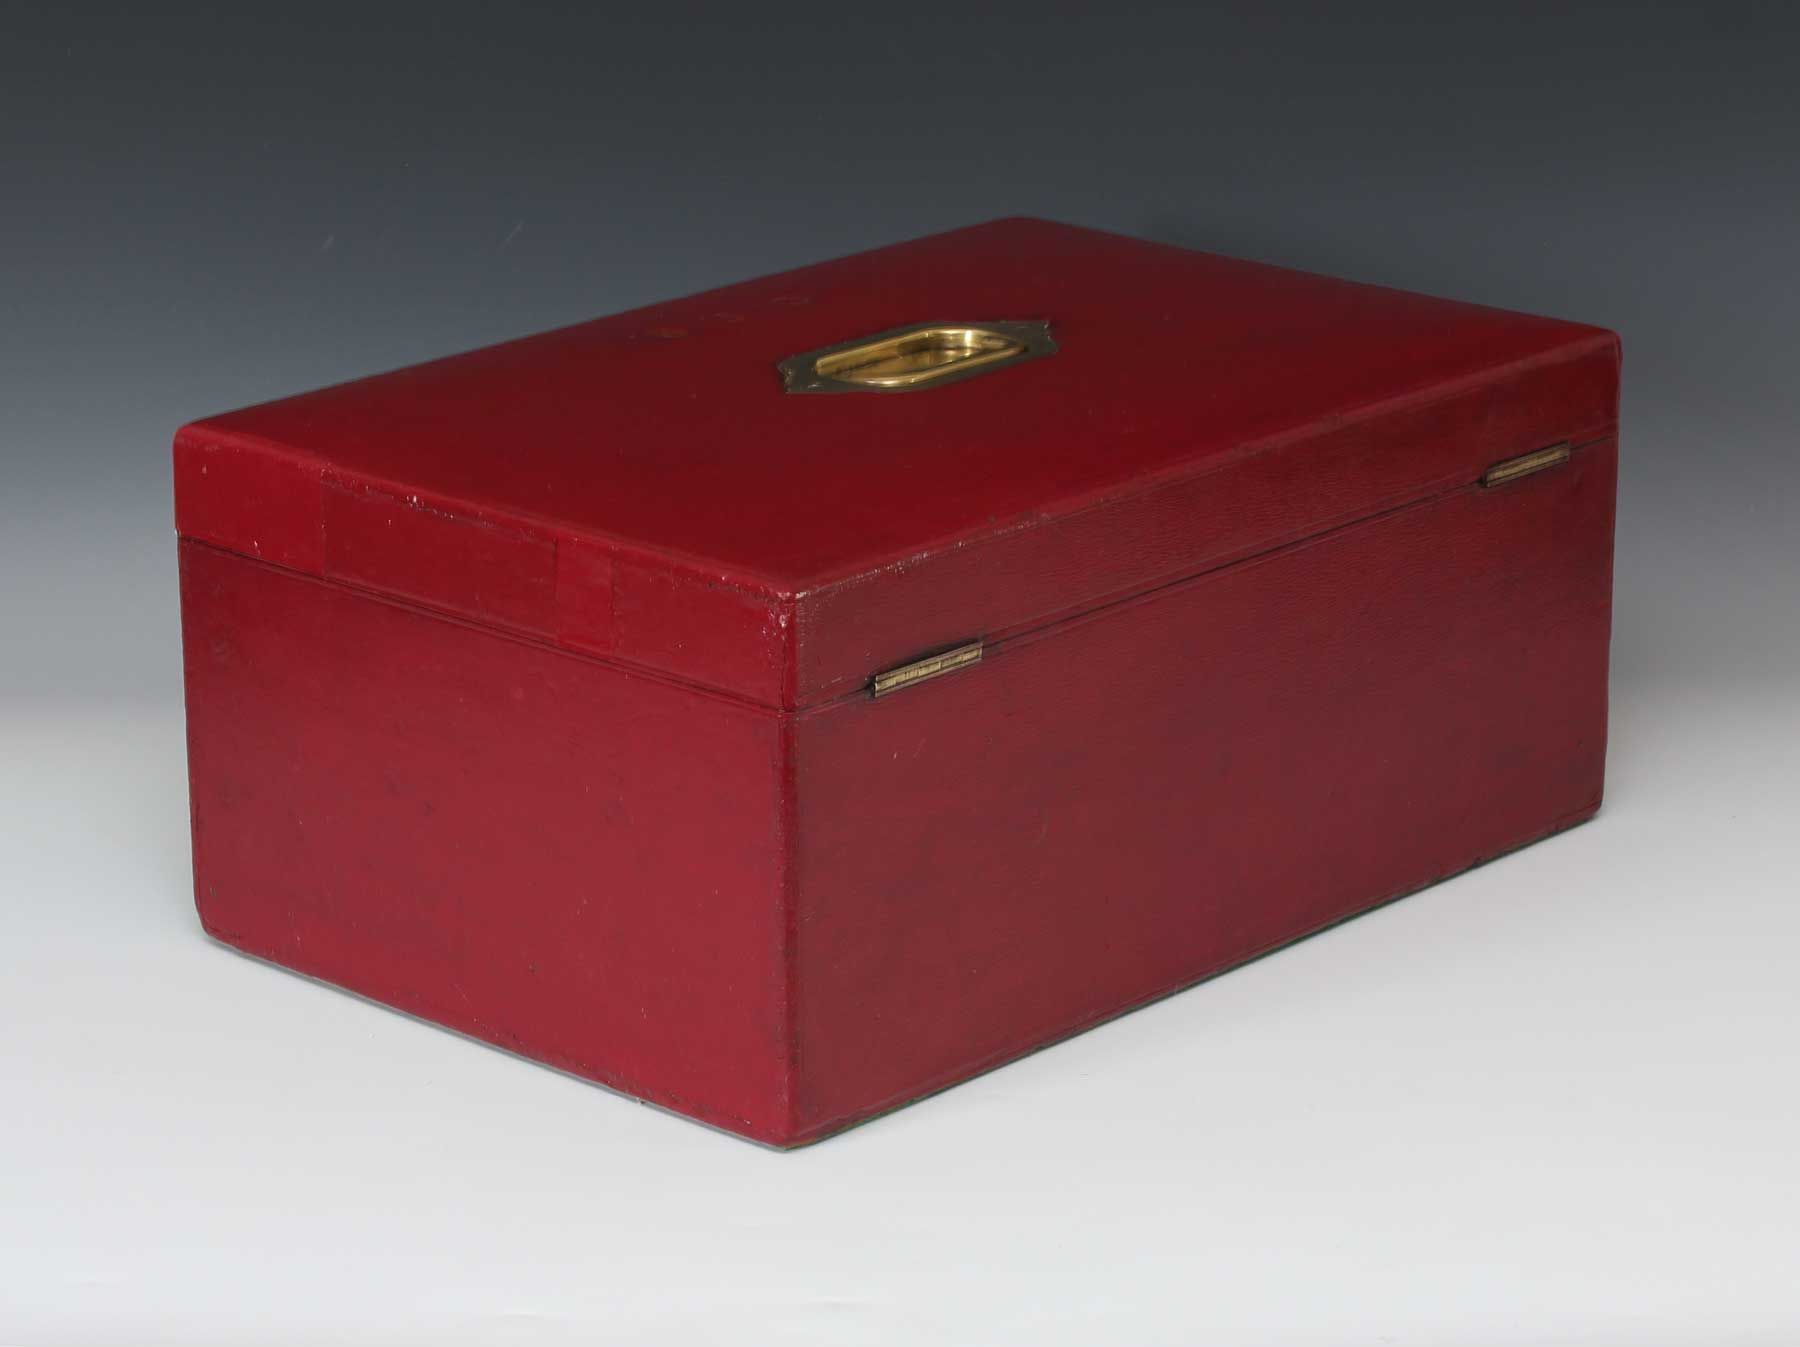 9315 a large victorian red leather bound governmental dispatch box c 1880  u2013 gerald mathias